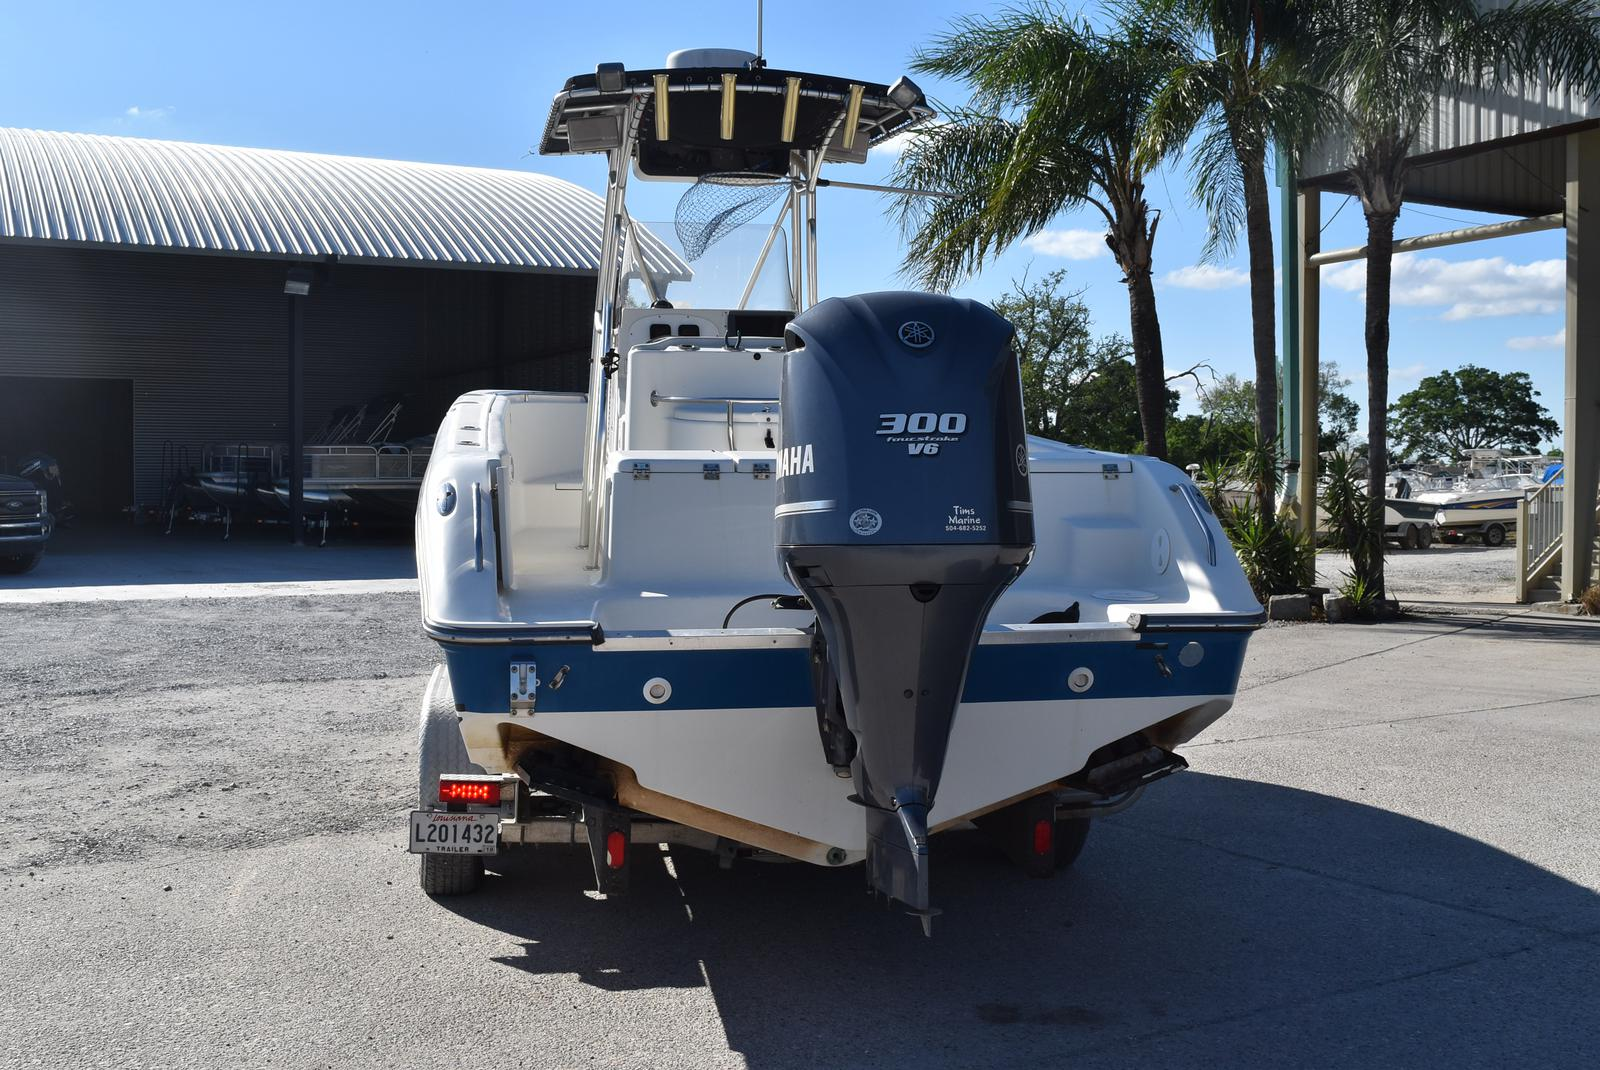 2006 Triton boat for sale, model of the boat is 2486 & Image # 2 of 24